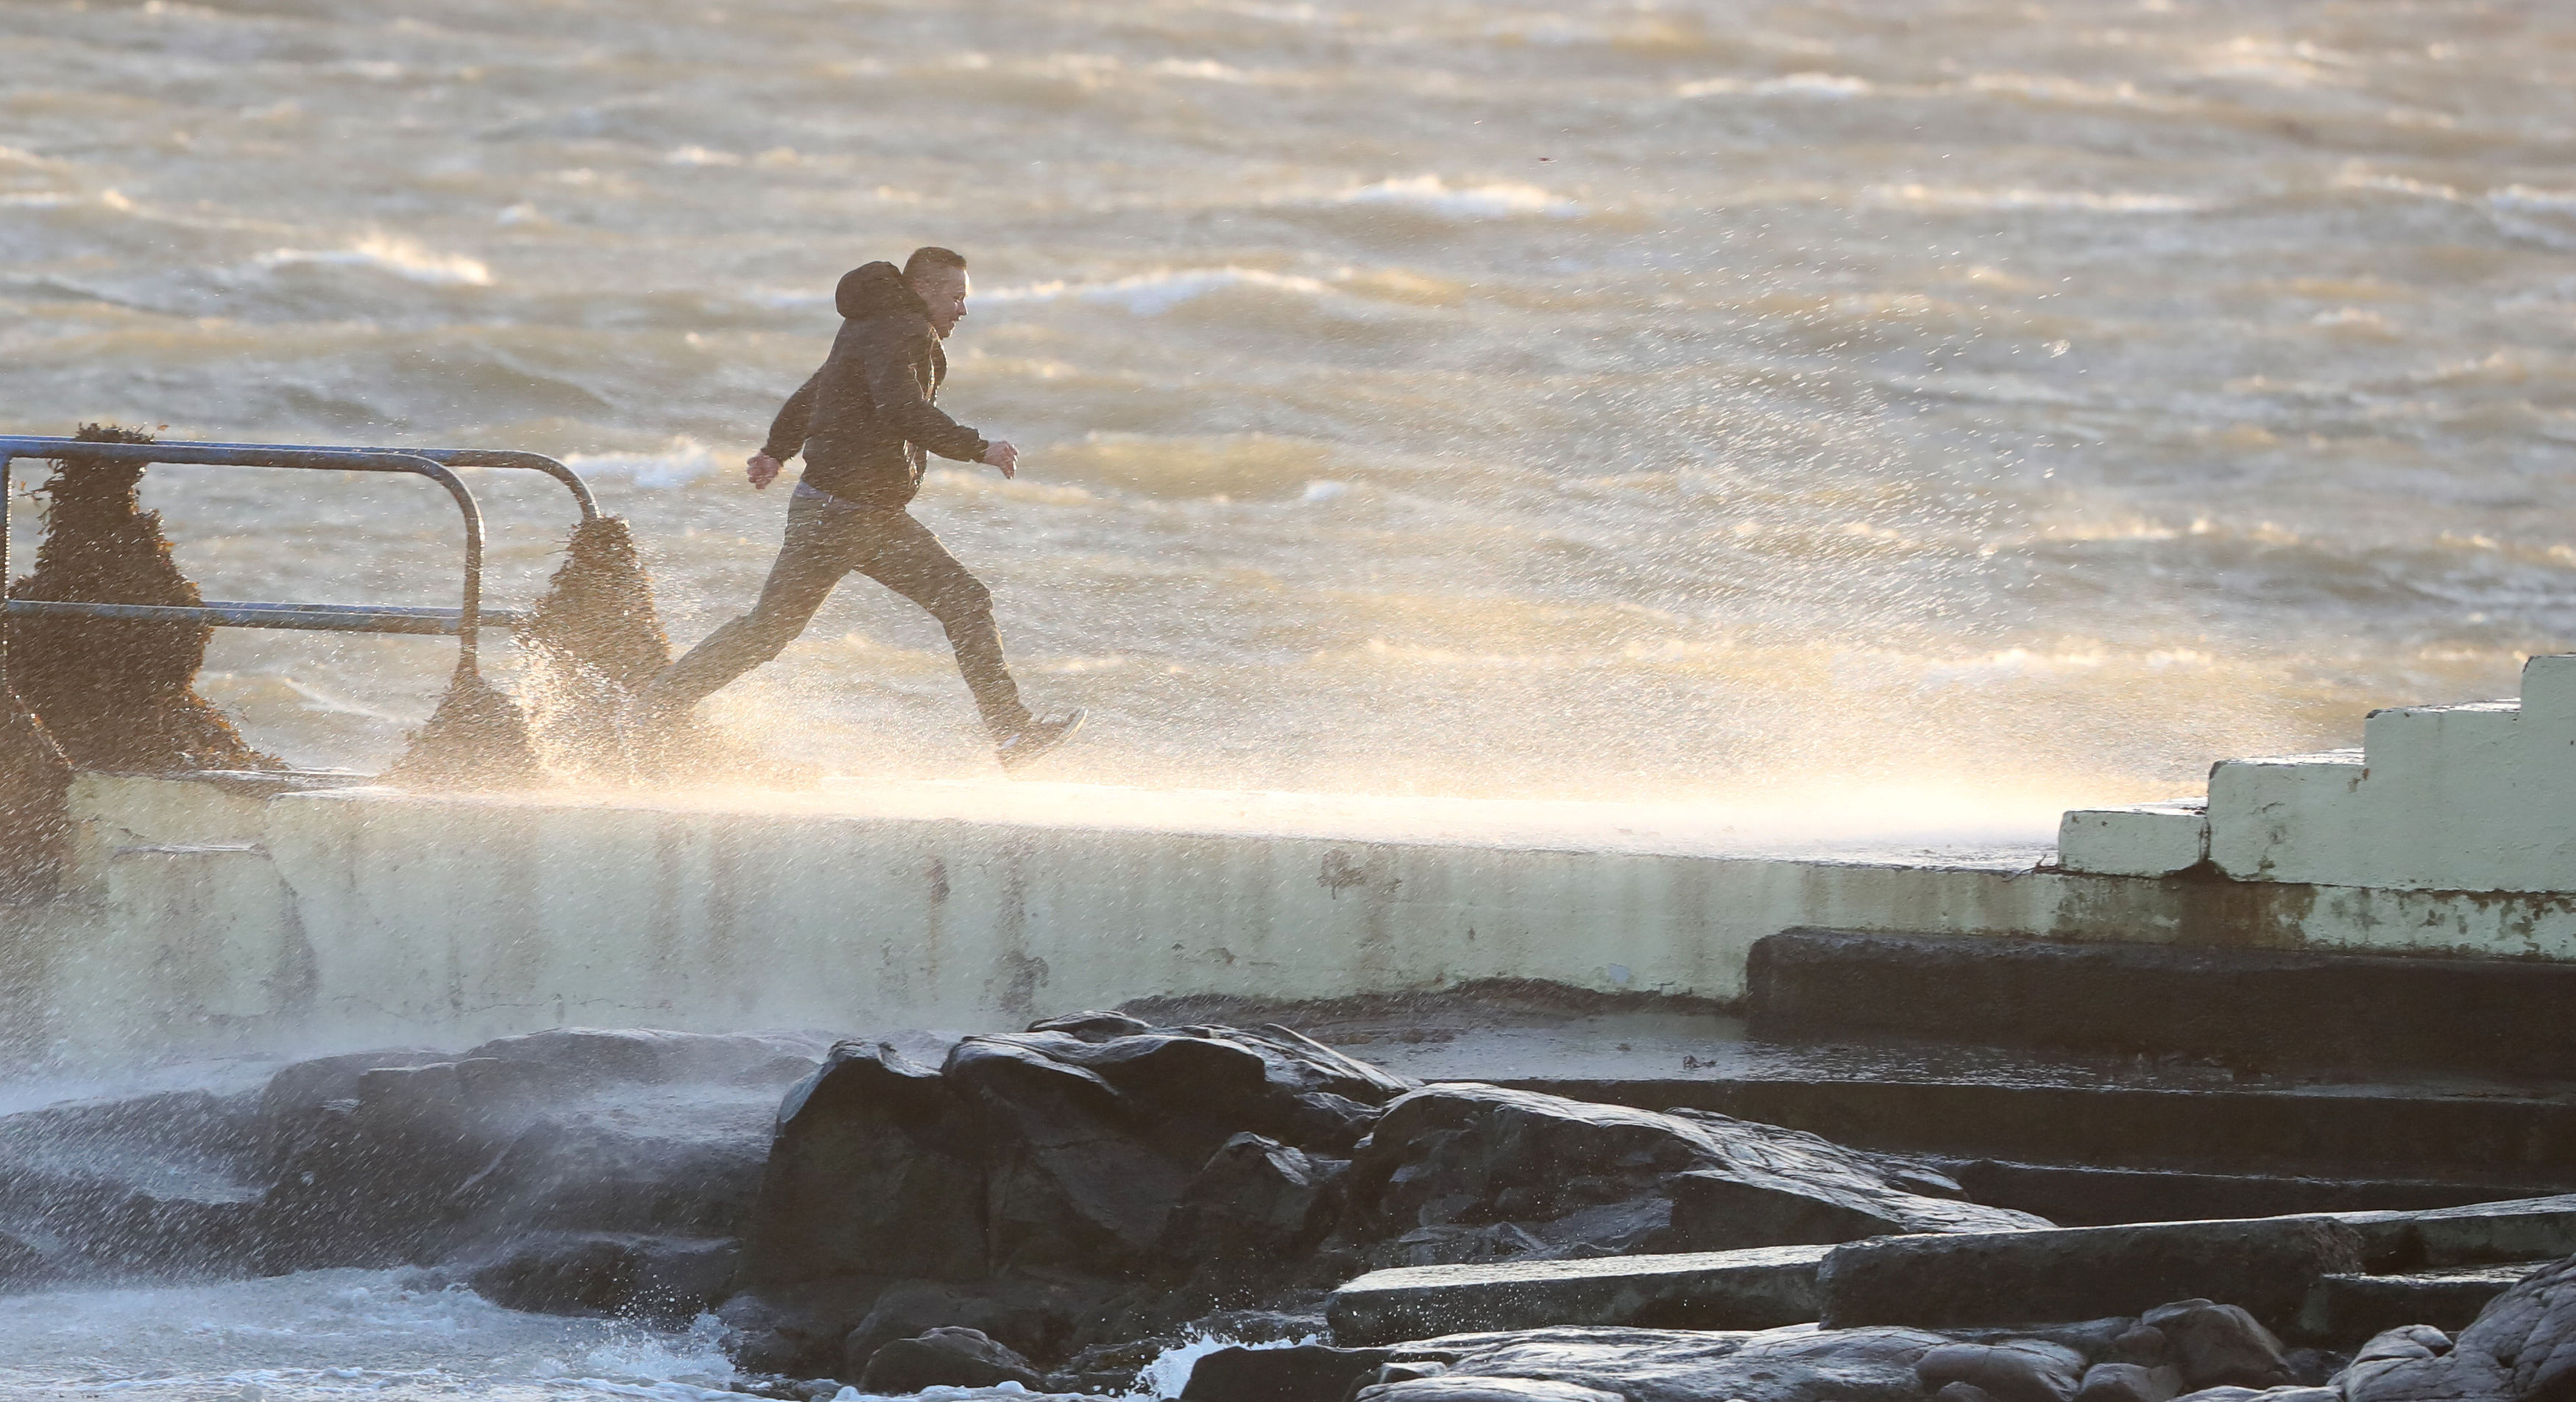 Dare devils run out to a diving board Salthill, Galway, as Hurricane Ophelia batters the UK and Ireland earlier this week.